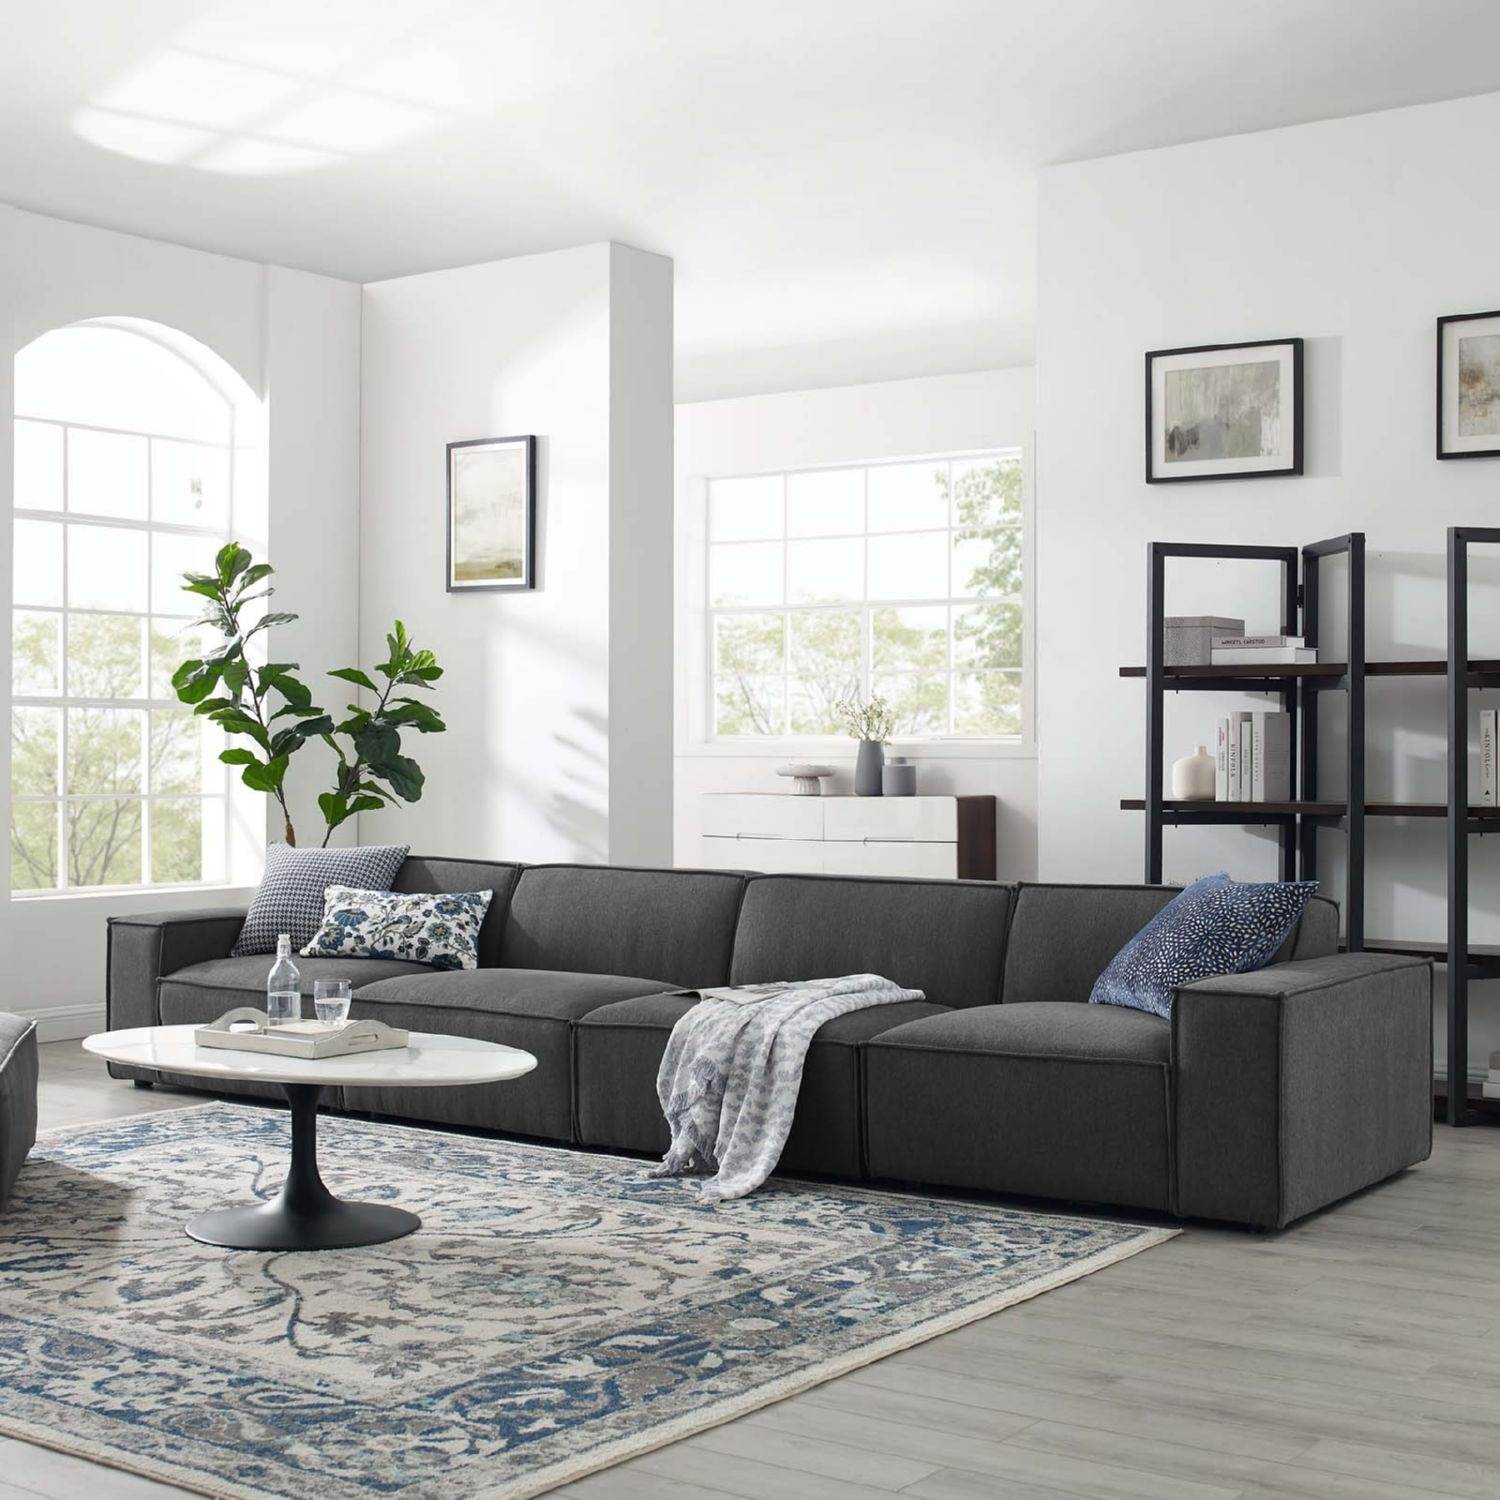 4-Piece Sectional Sofa In Charcoal Foam Padding - image-10